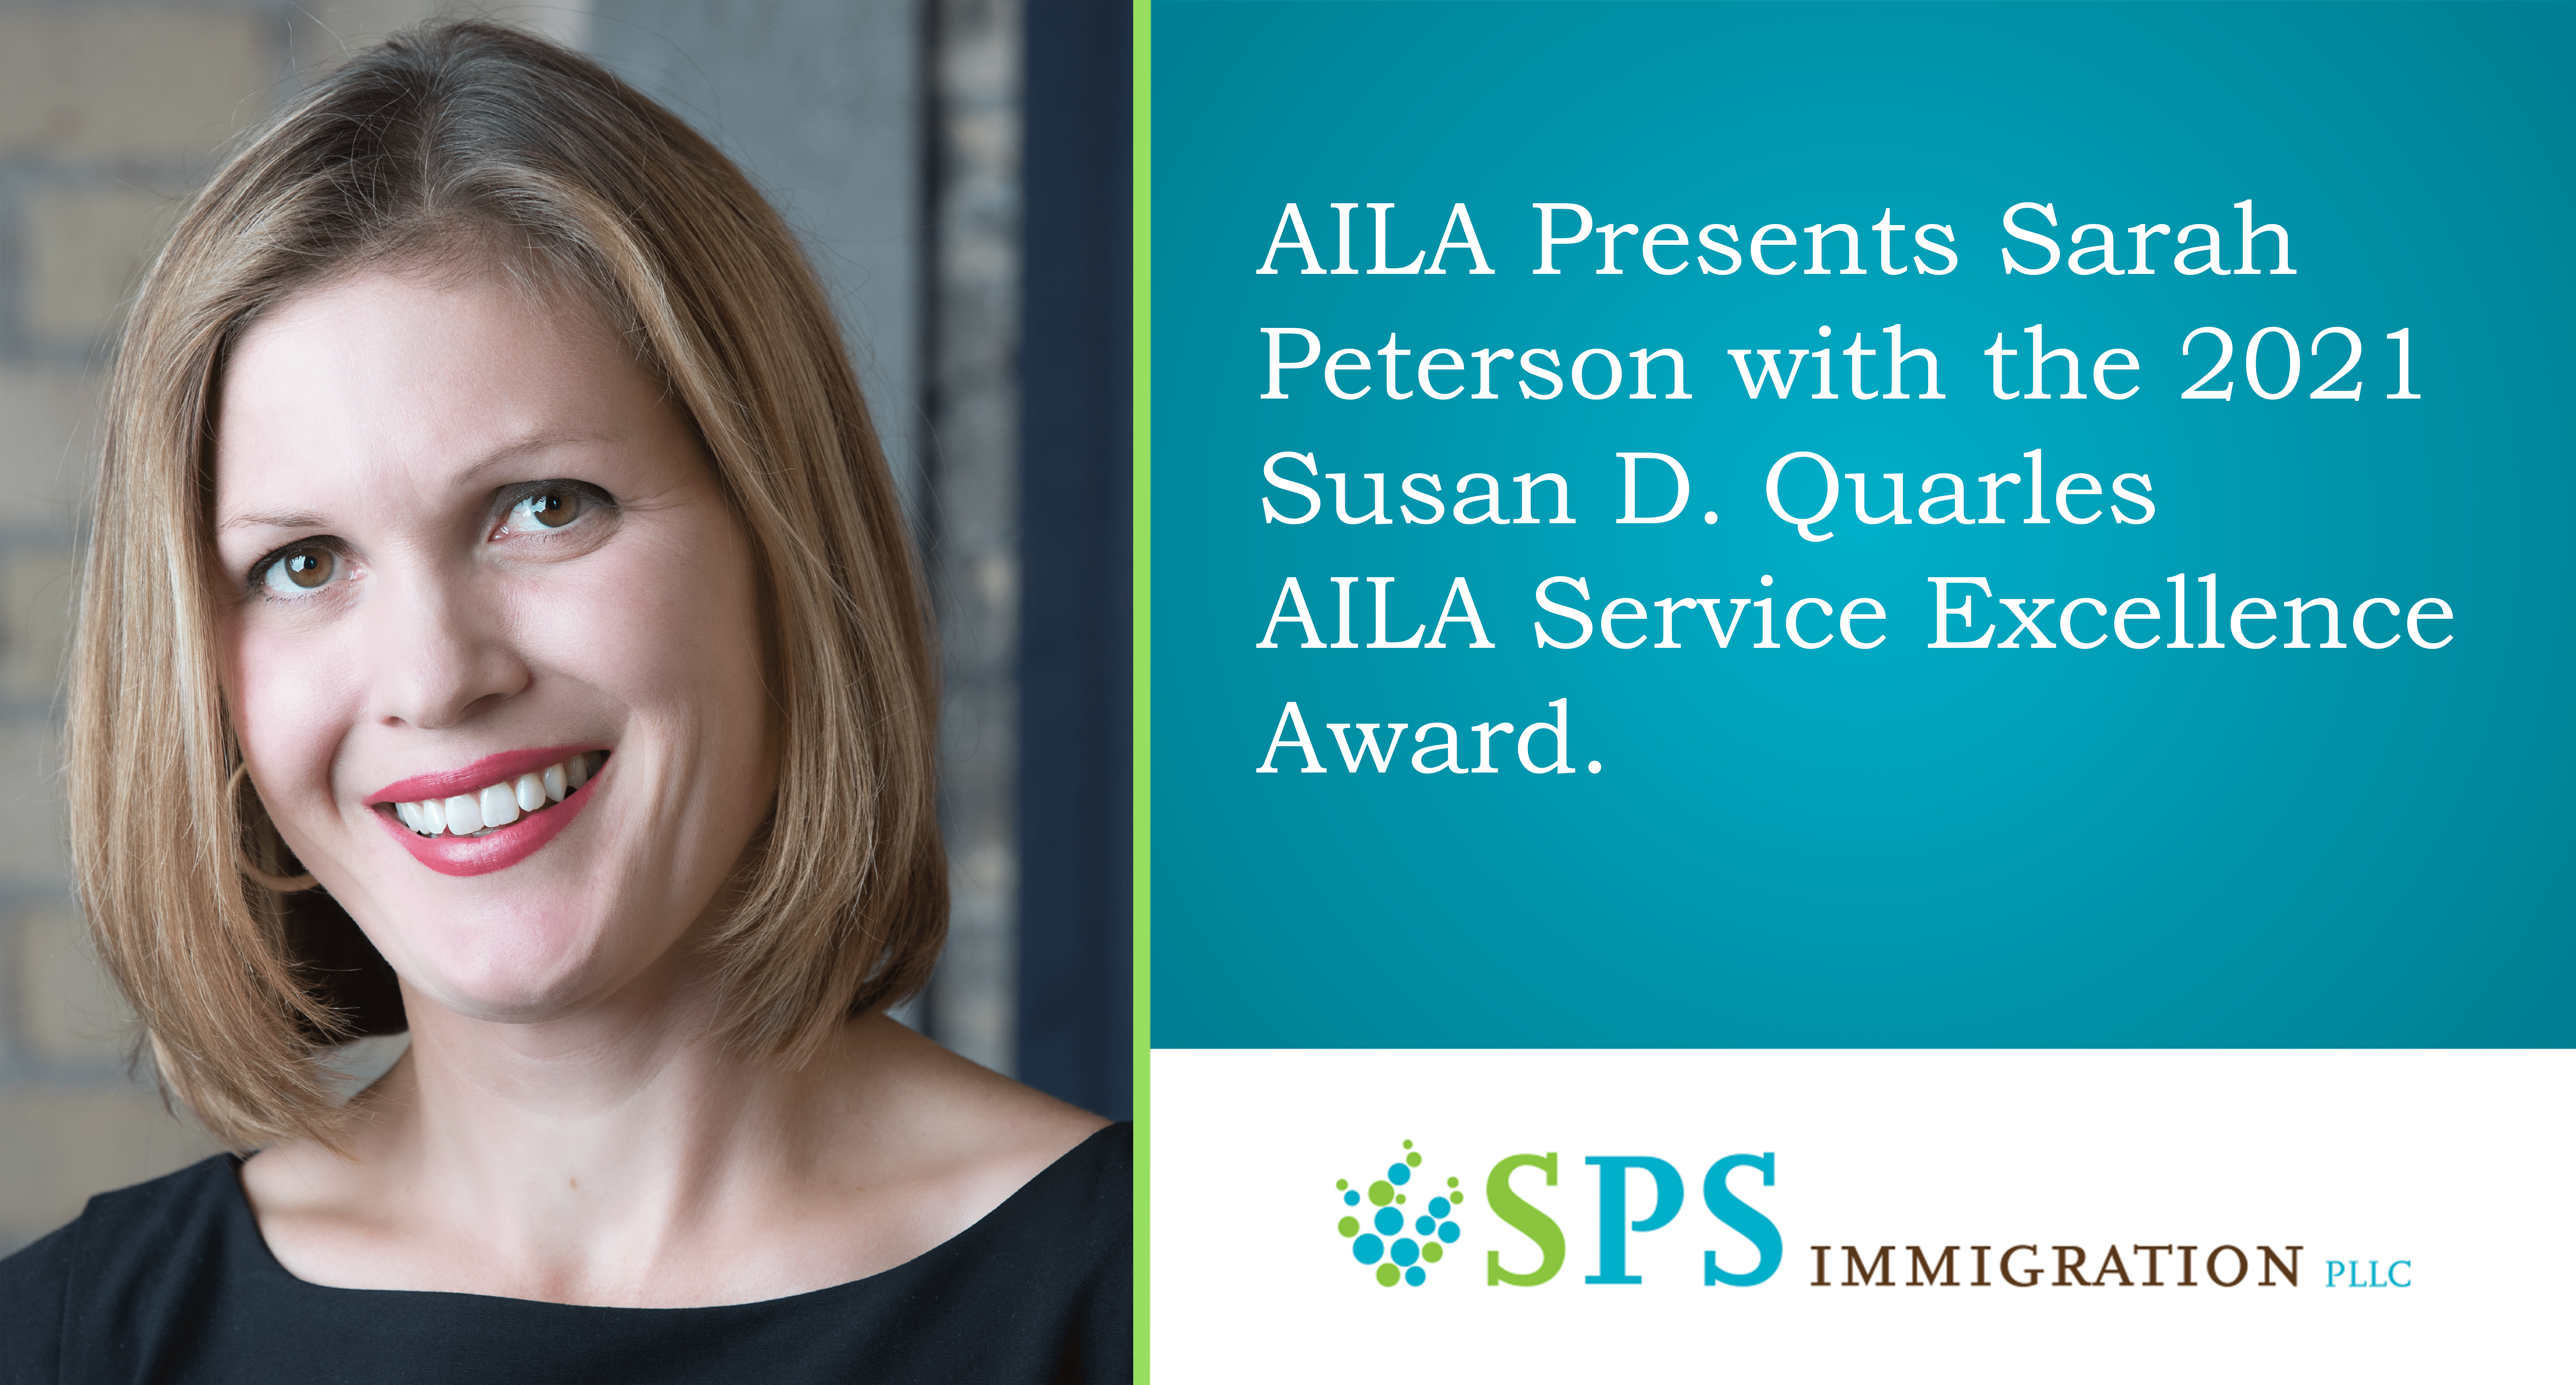 Sarah Peterson is awarded the Susan D. Quarles AILA Service Excellence Award